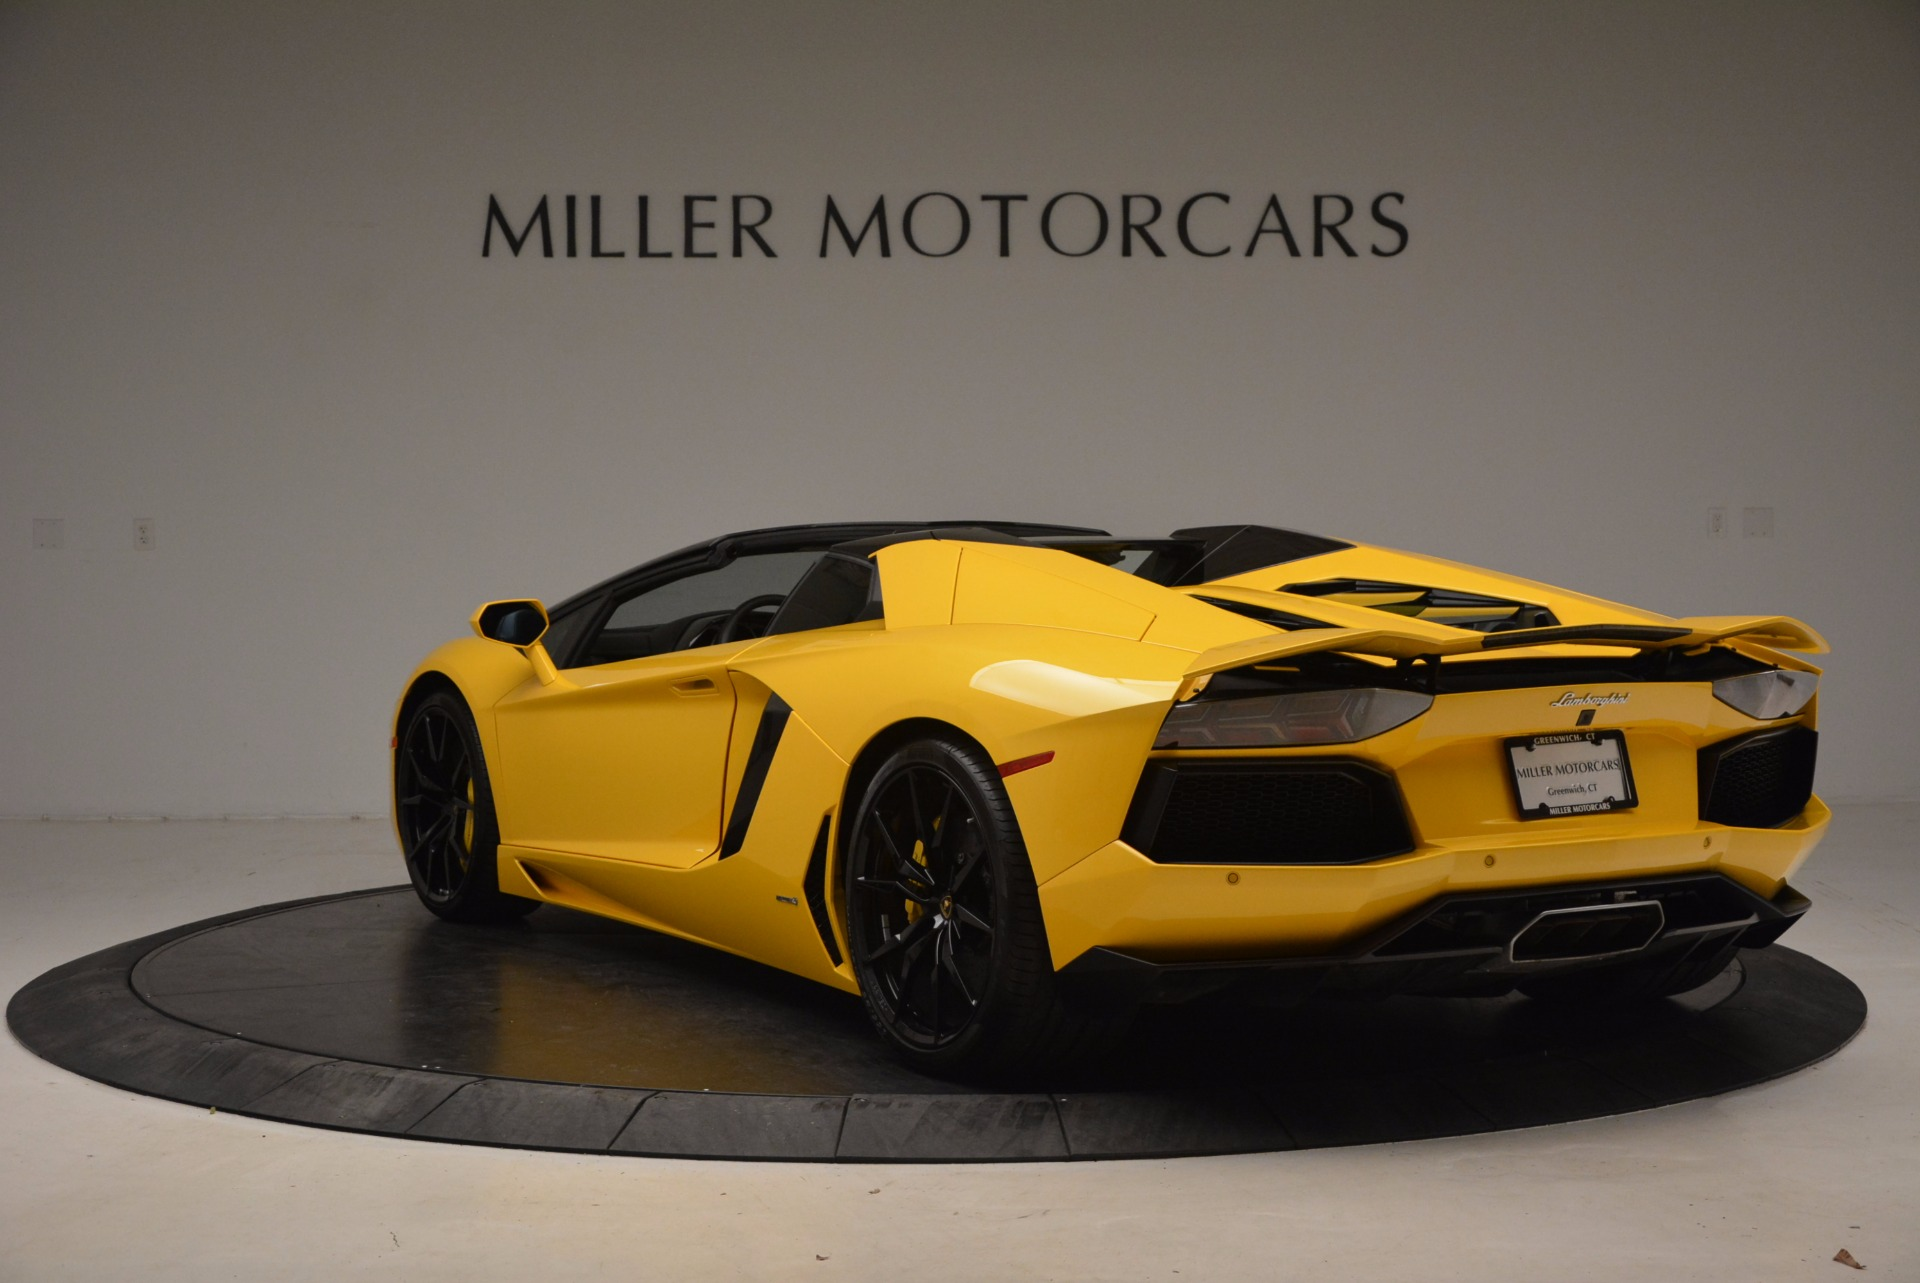 Used 2015 Lamborghini Aventador LP 700-4 Roadster For Sale In Westport, CT 1774_p5